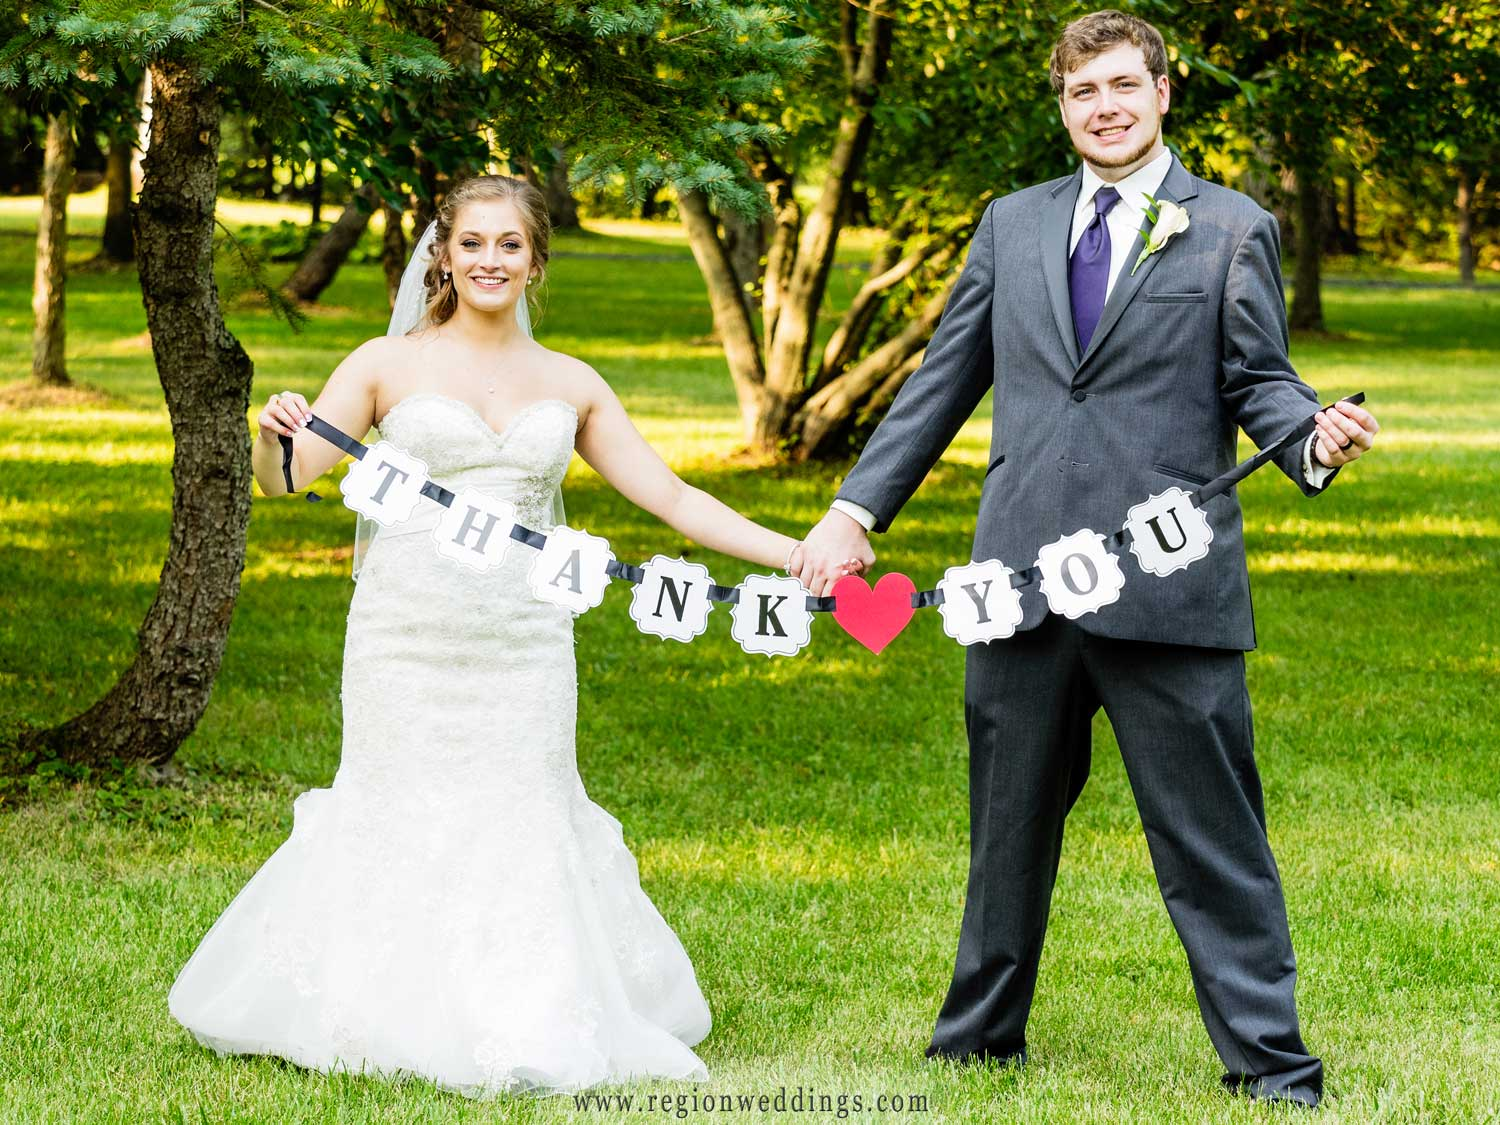 The bride and groom unfurl their Thank You banner.